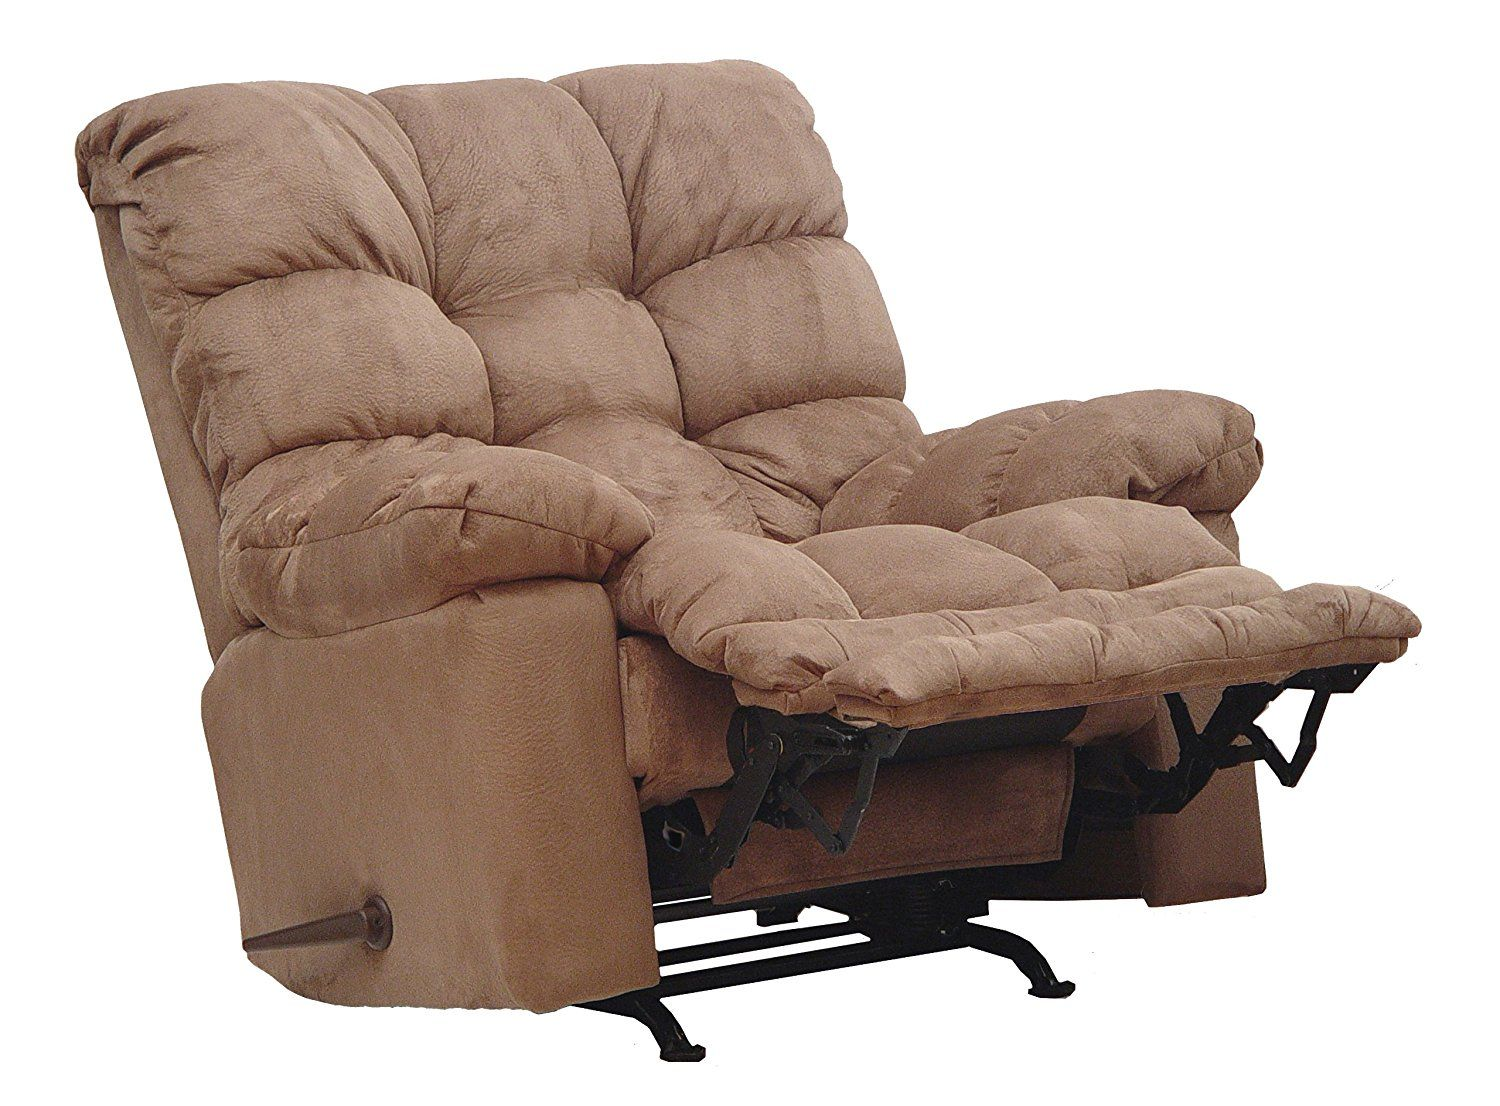 7 Best Recliners For Tall Man Reviewed In Detail Sept 2020 Recliner Rocker Recliners Recliner Chair